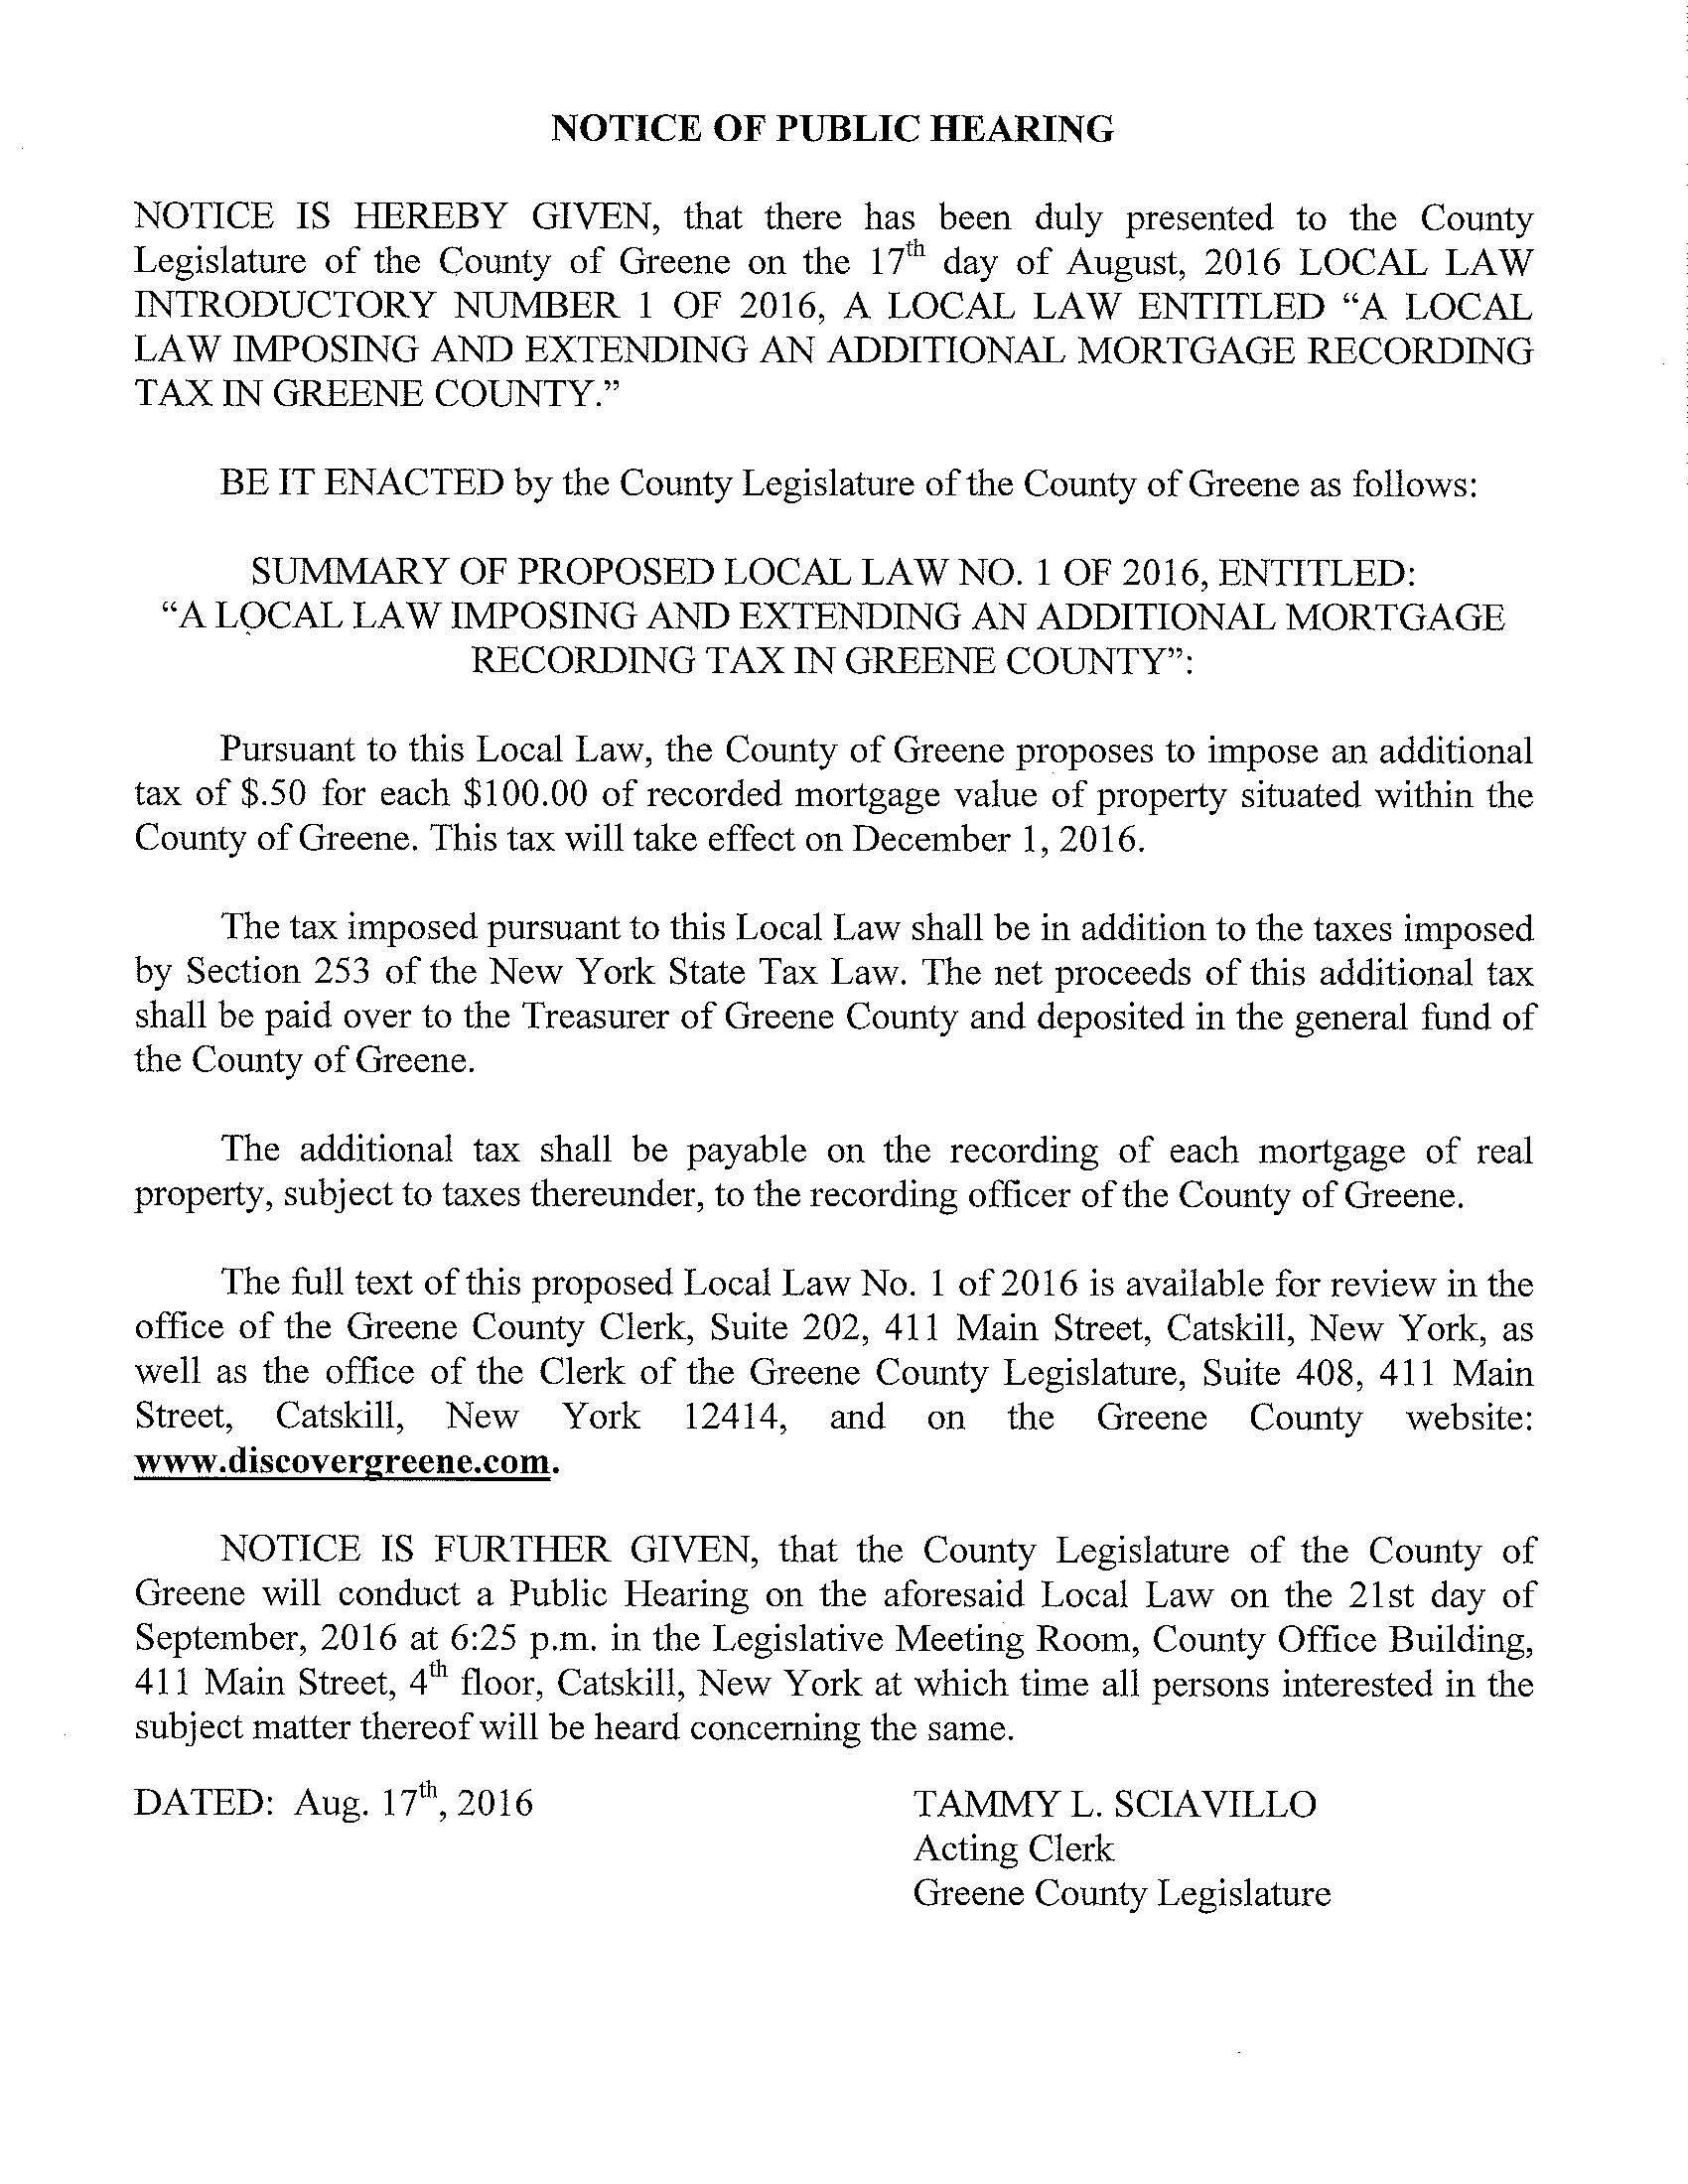 Notice of Public Hearing with Local Law #1 of 2016_Page_1